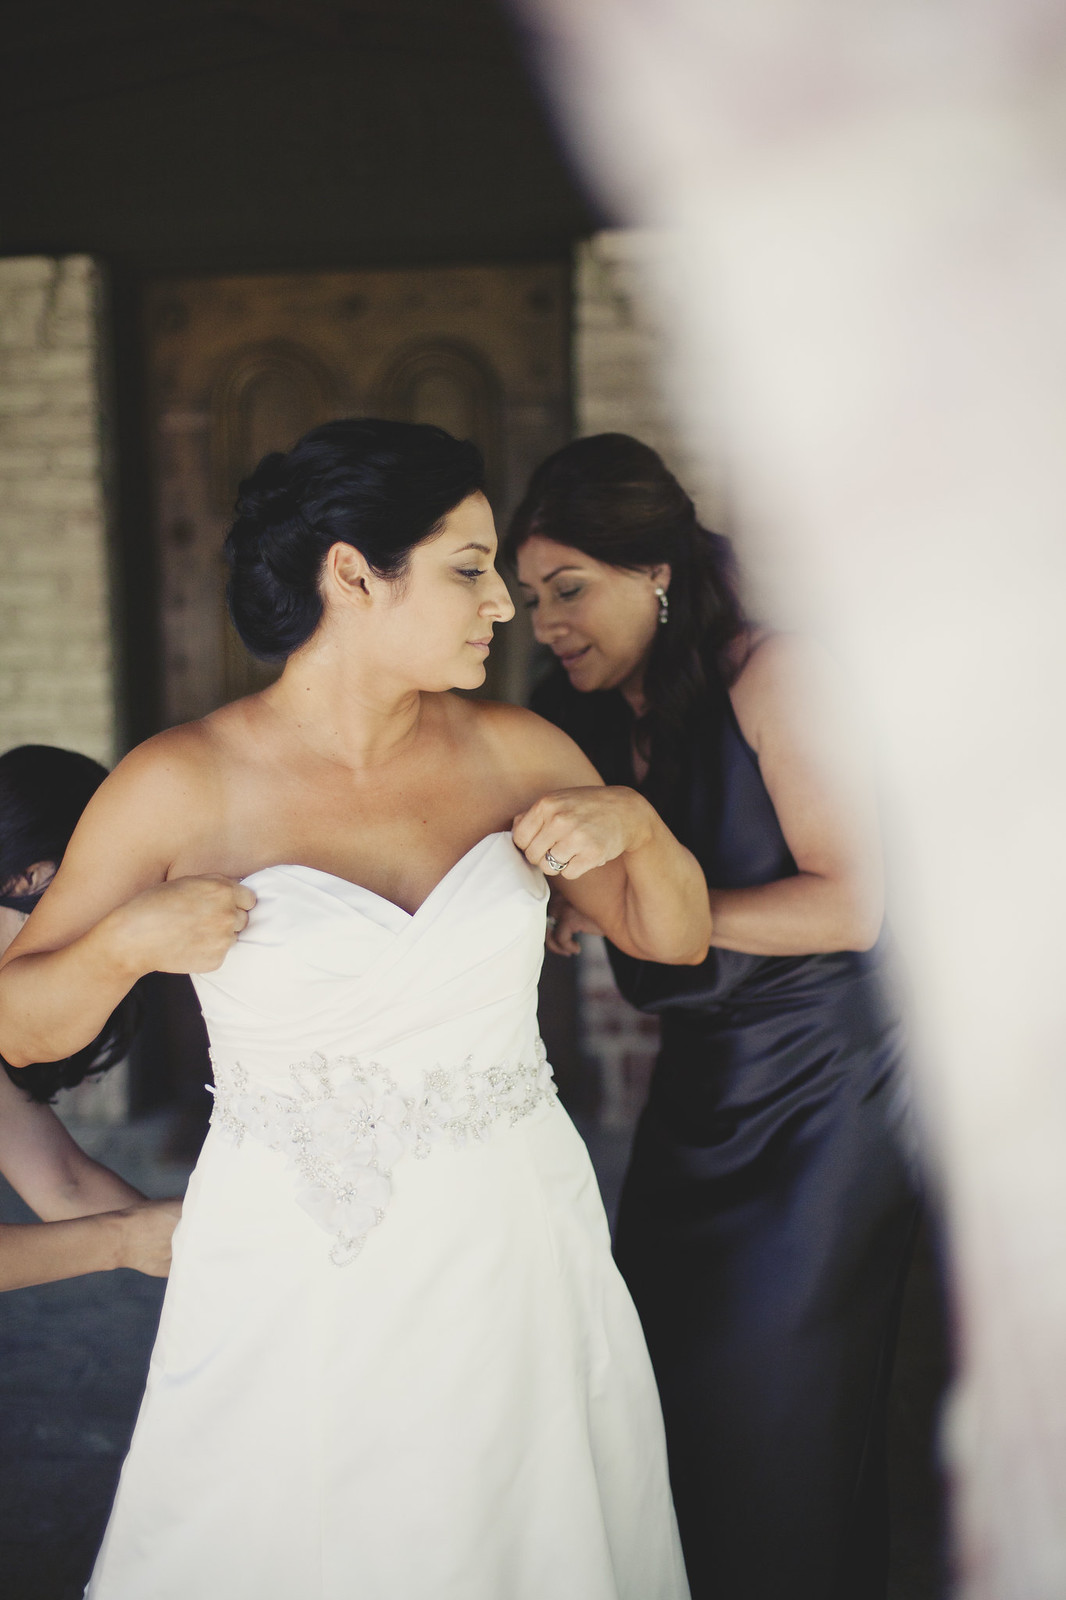 Mother Helping Her Daughter Get Ready For Her Wedding